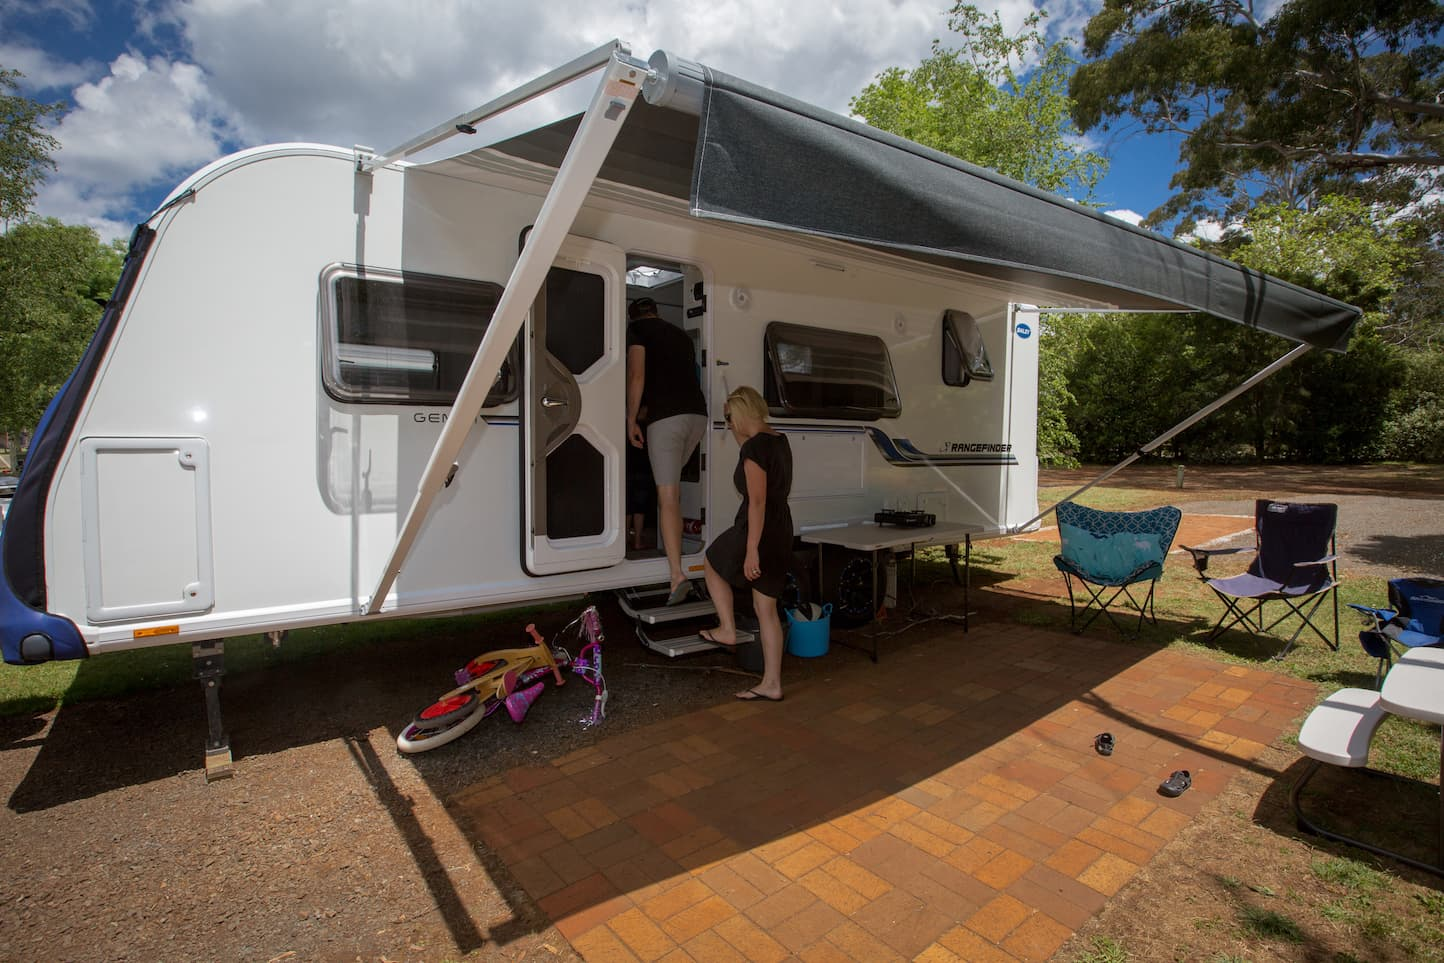 Daylesford Holiday Park Caravan Camping Sites Accommodation